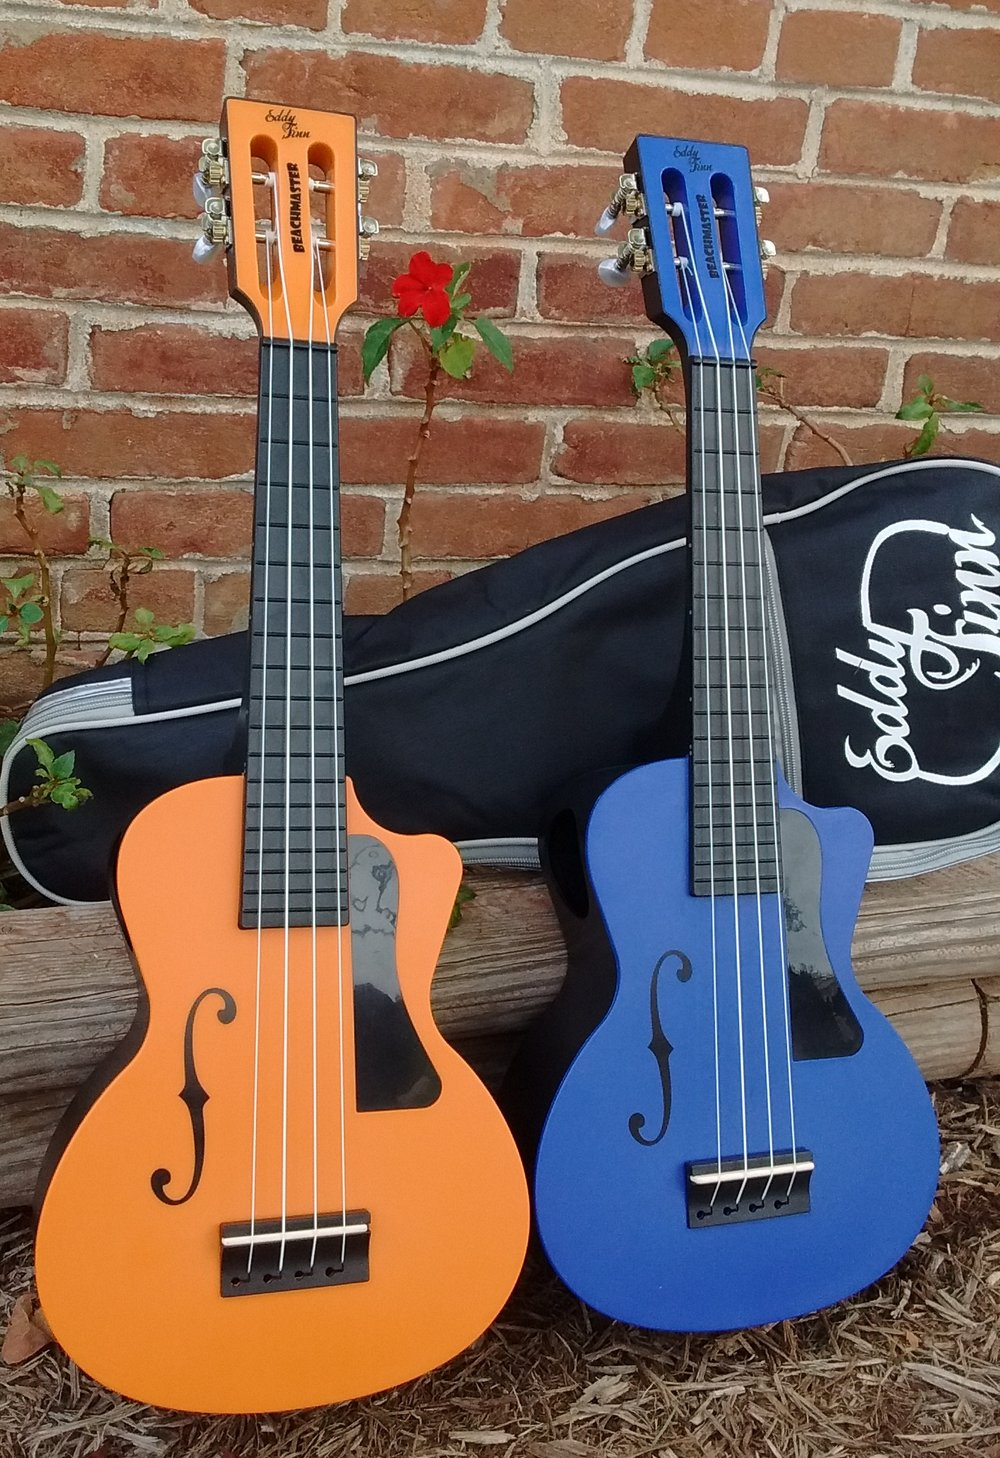 Eddy Finn Beachmaster Concert Ukulele - available in Orange, Blue, Red, and Green